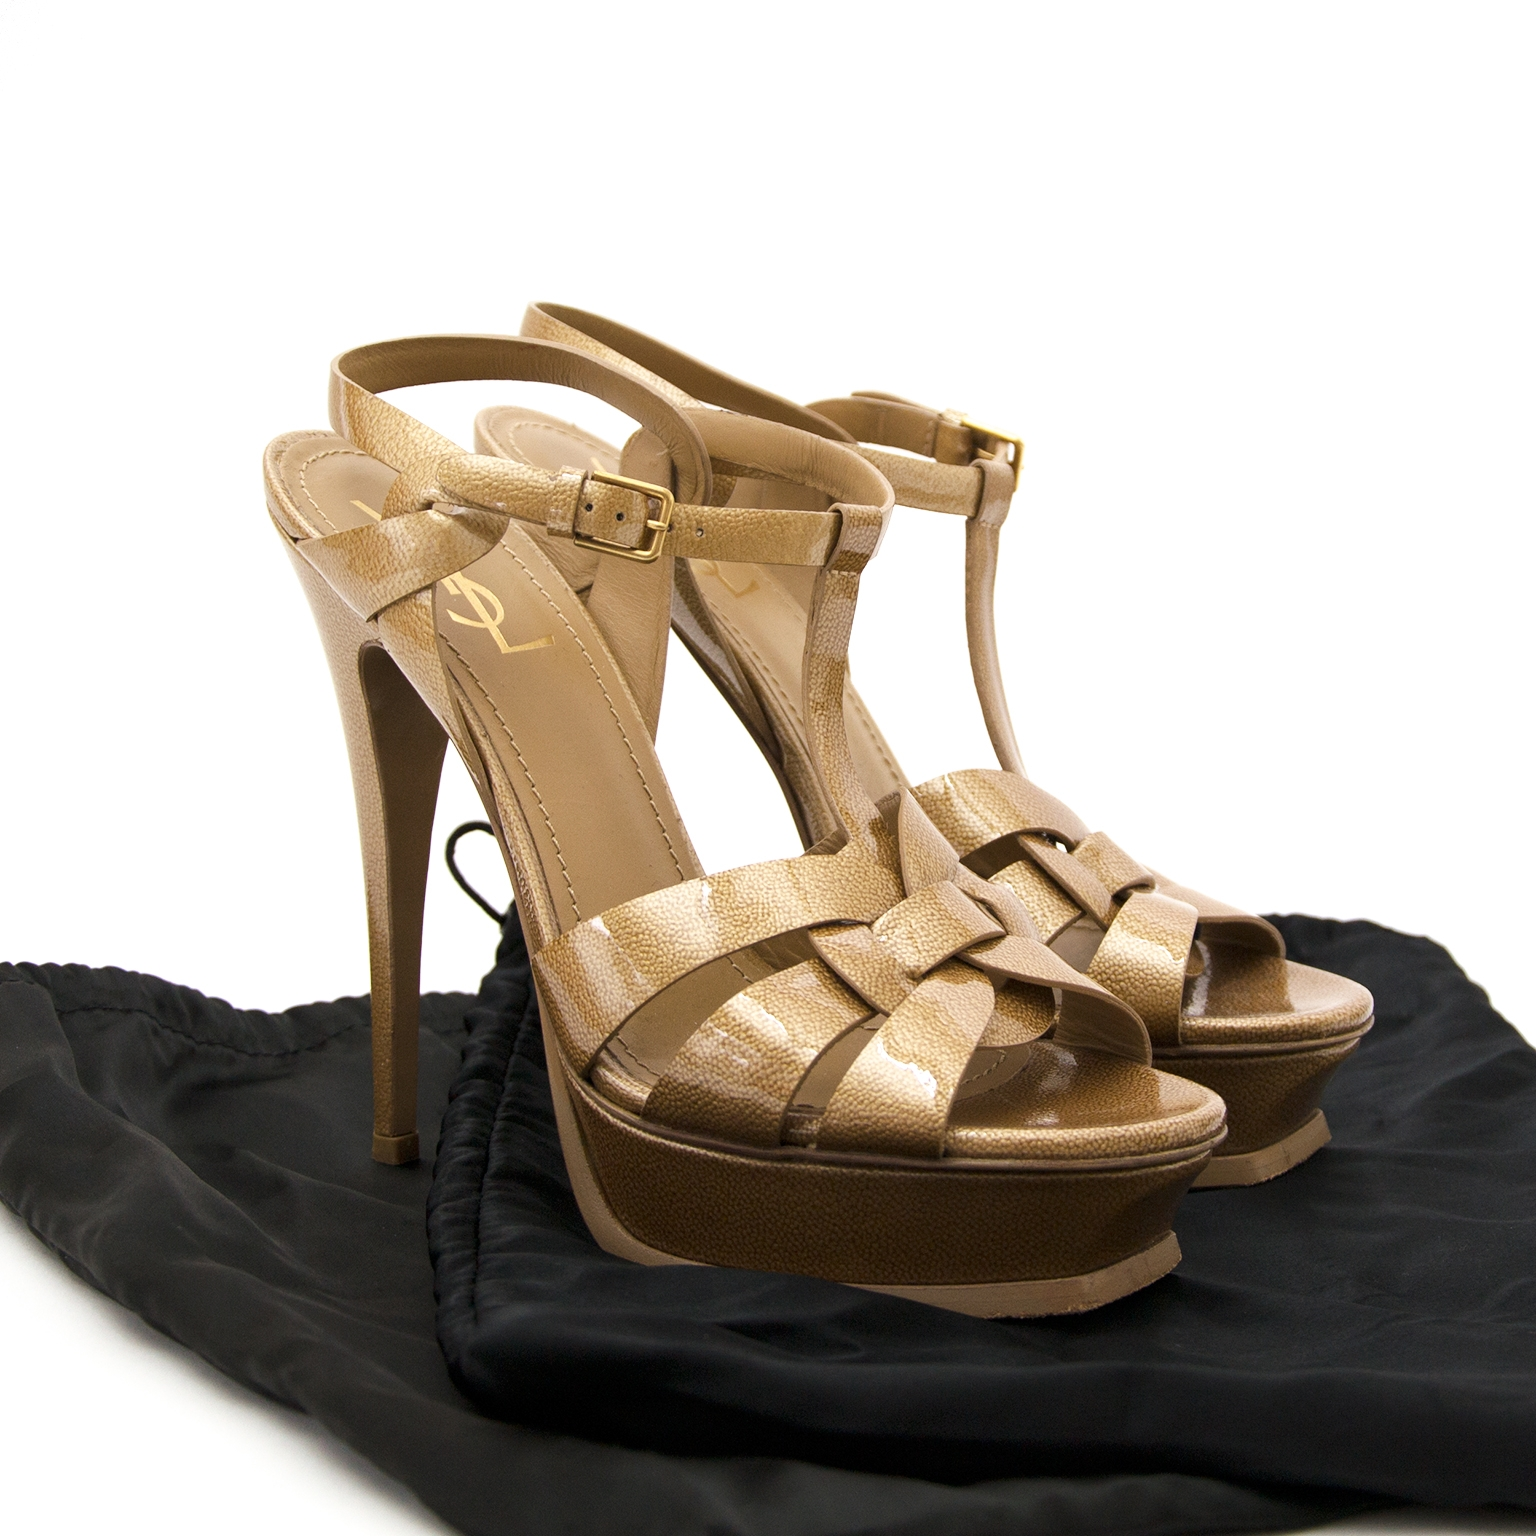 5dc82b47d62d ... yves saint laurent patent leather tribute sandals now for sale at  labellov vintage fashion webshop belgium